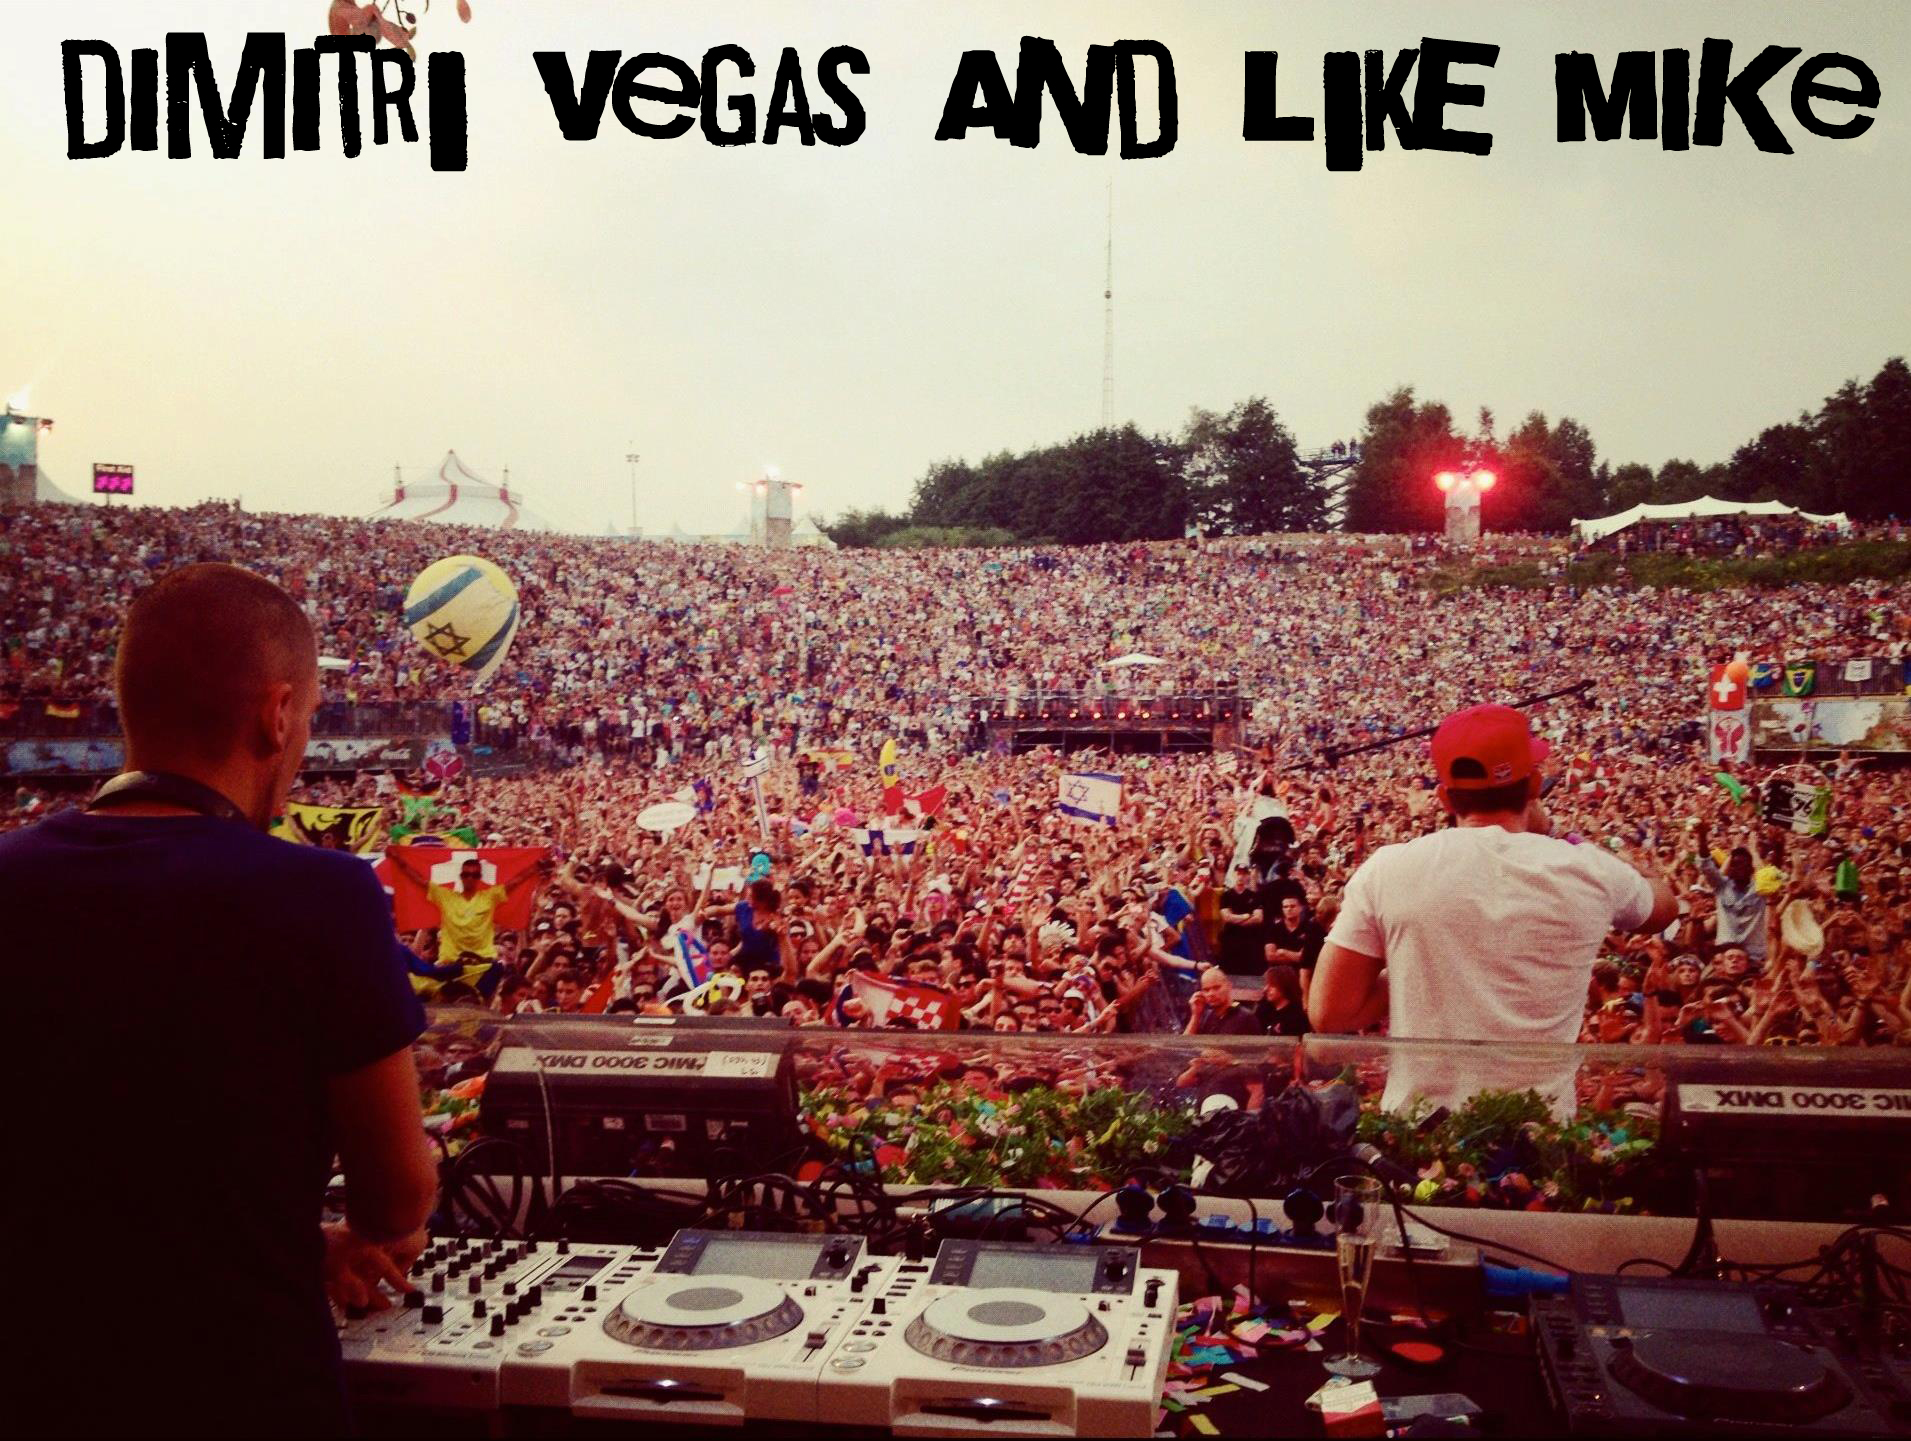 New Funny Wallpaper Hd Dimitri Vegas Amp Like Mike Pictures The Wow Style